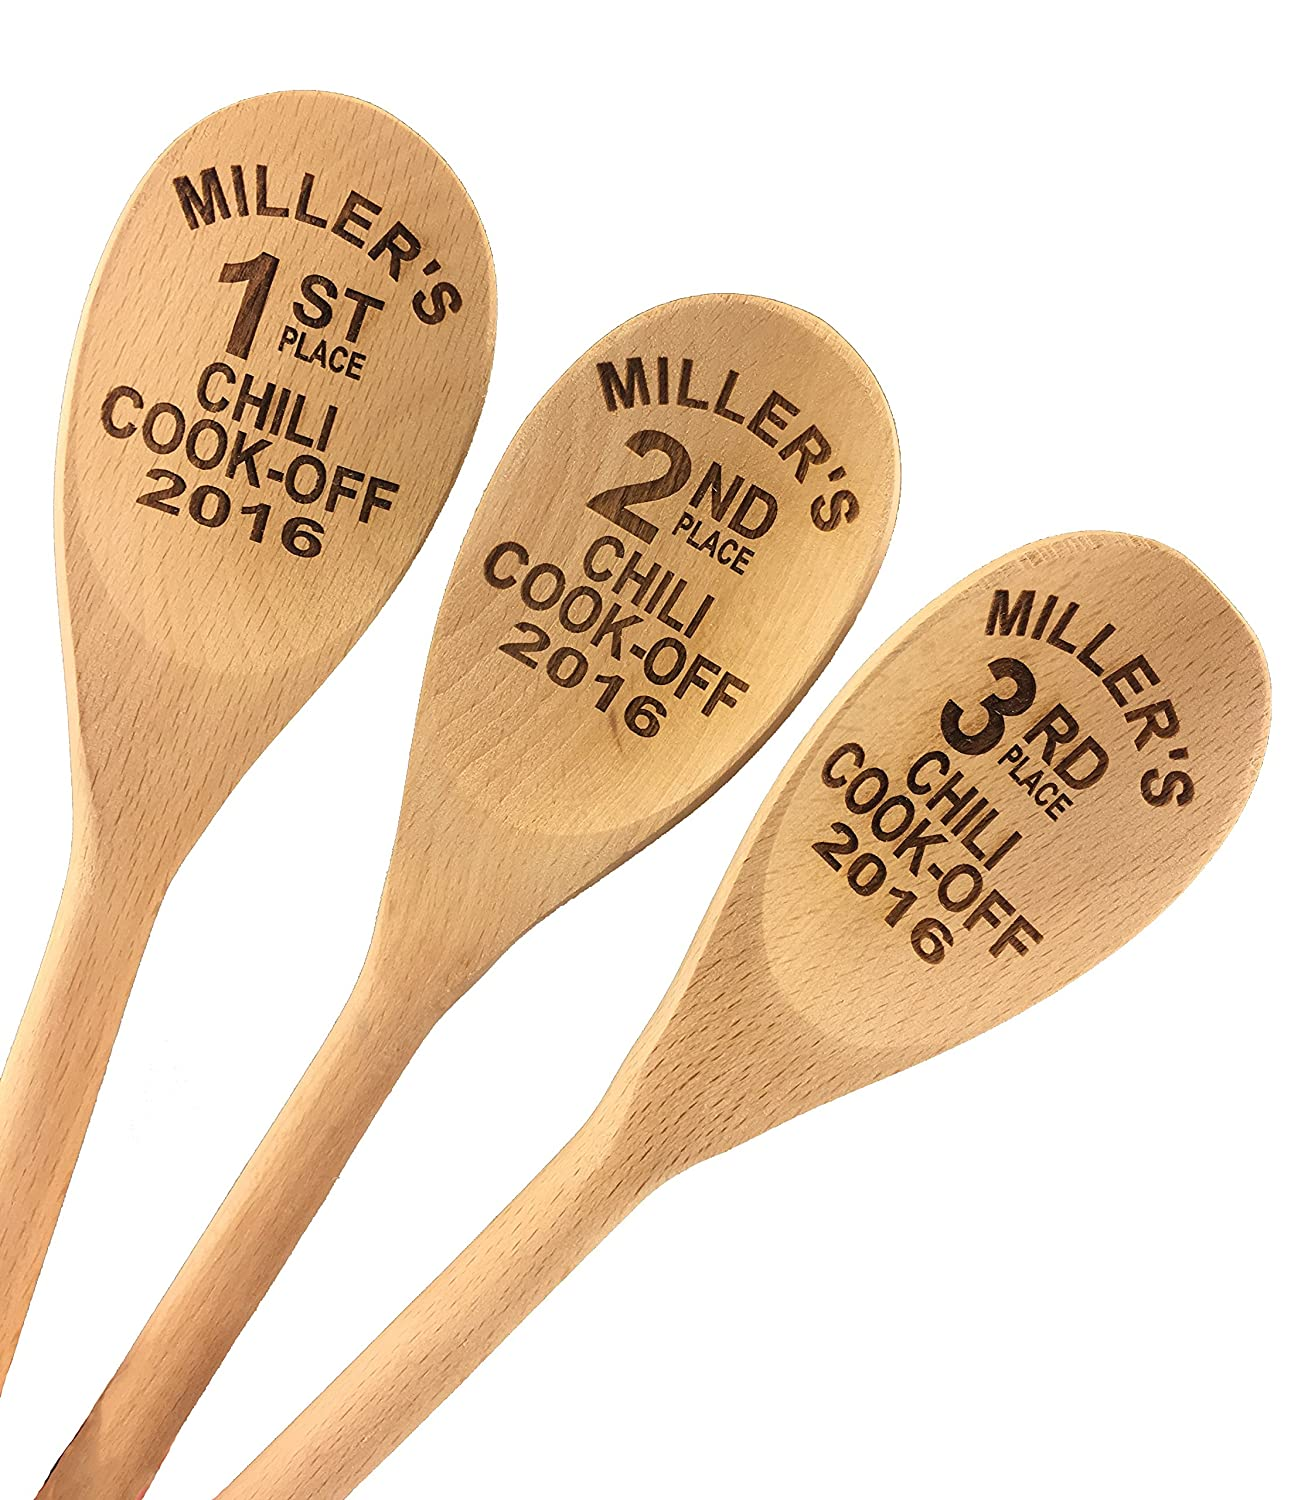 Custom Engraved 14in Bake Off Wood Spoon Prizes (Set of 3) Wedding Collectibles 901003